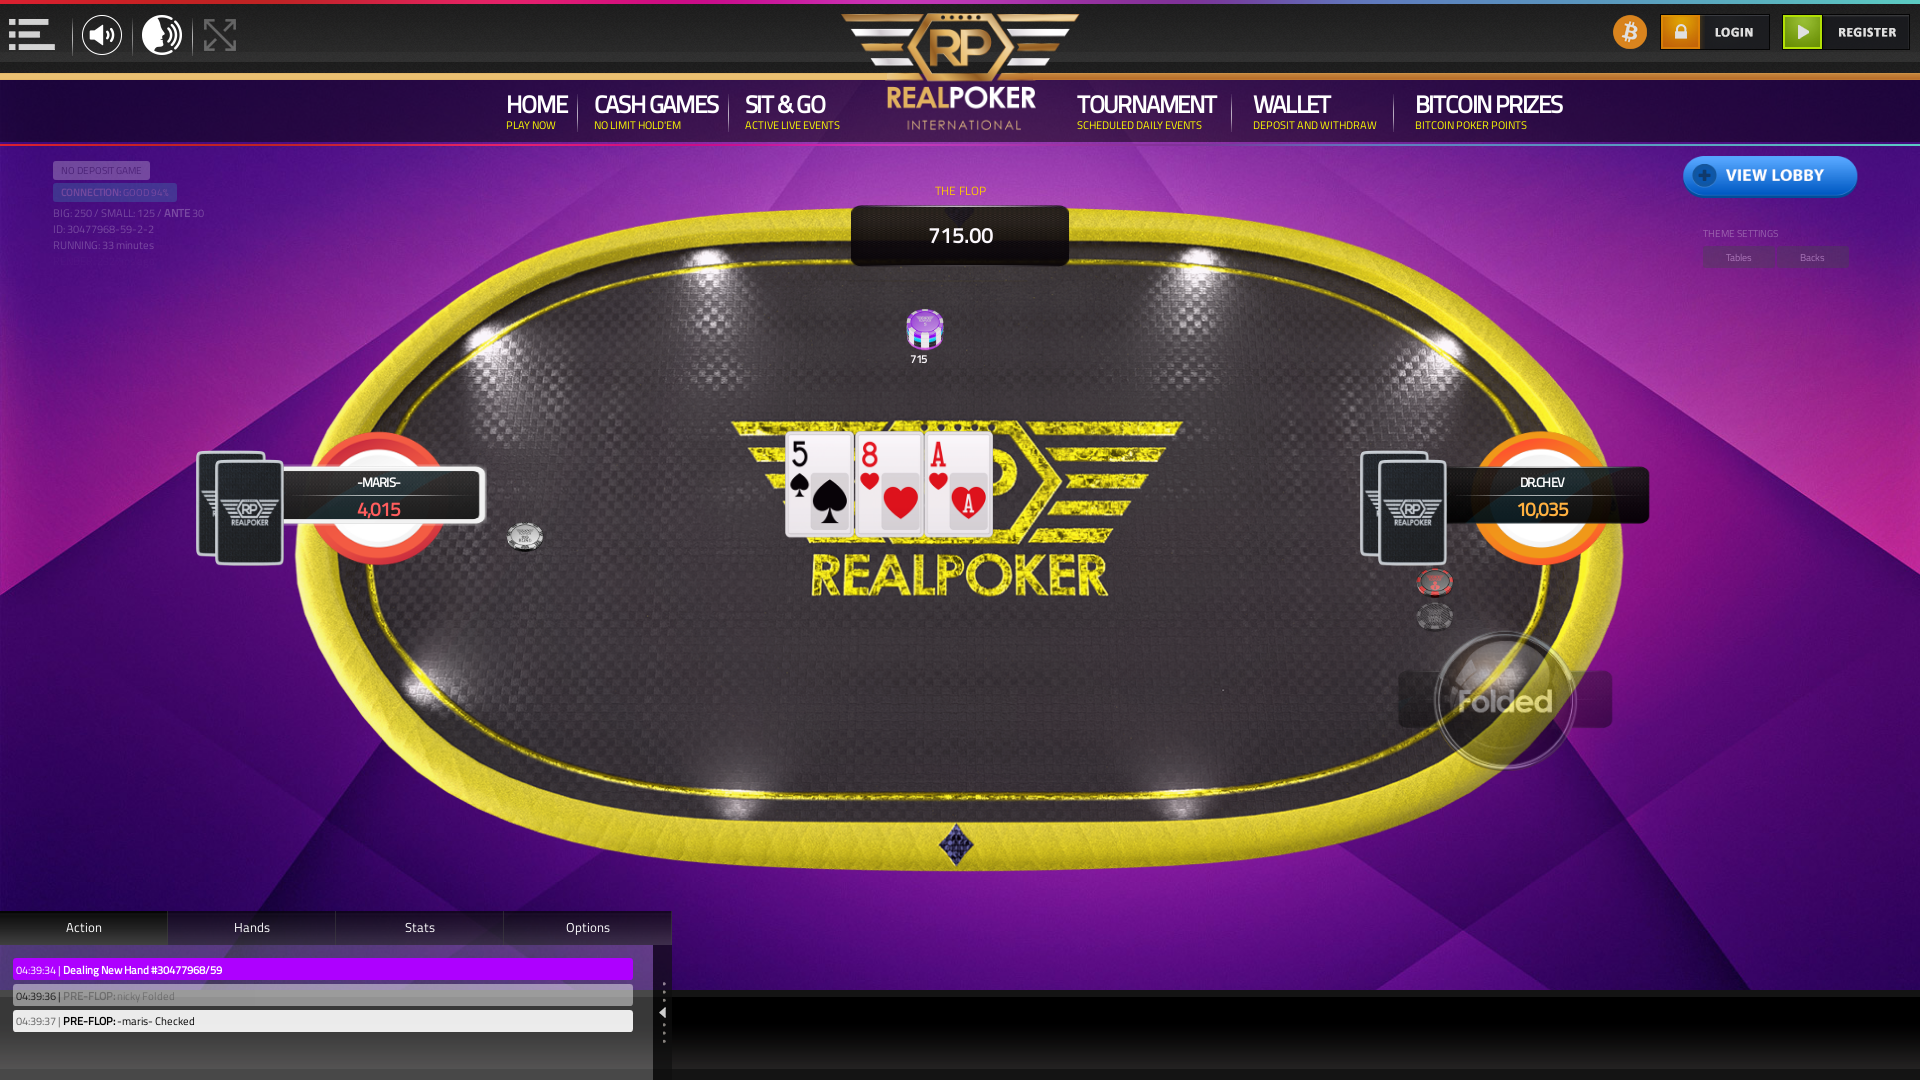 10 player texas holdem table at real poker with the table id 30477968